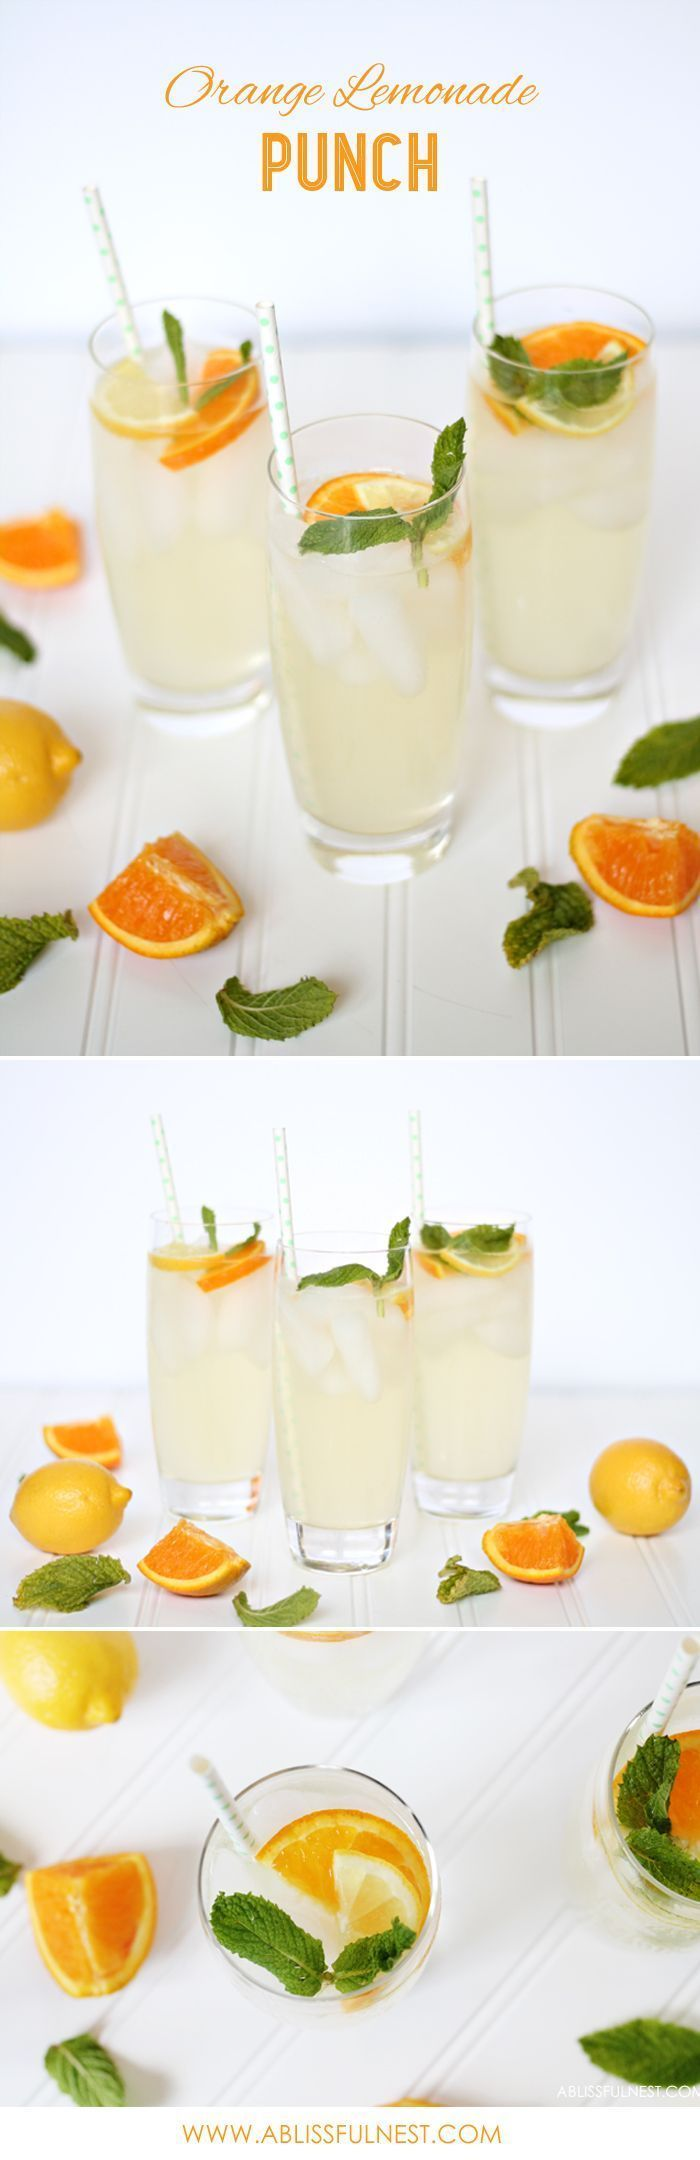 Orange Lemonade Punch Recipe #lemonadepunch